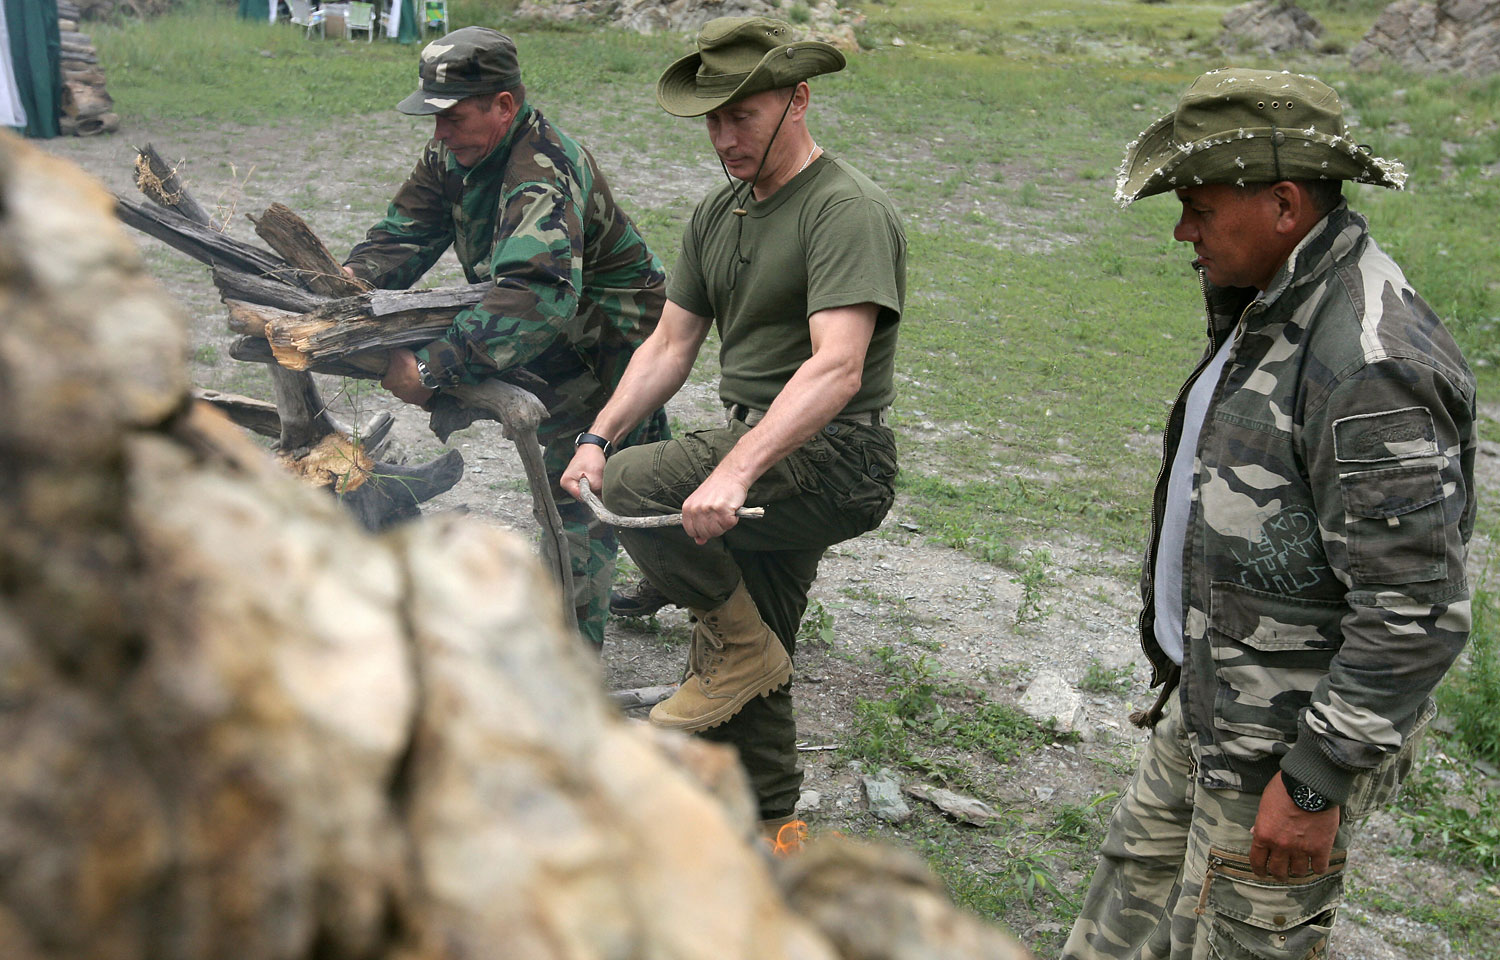 Putin's choice of a rustic vacation resonated with many Russians, who tend to be suspicious and resentful of the moneyed élite, Aug. 3, 2009.